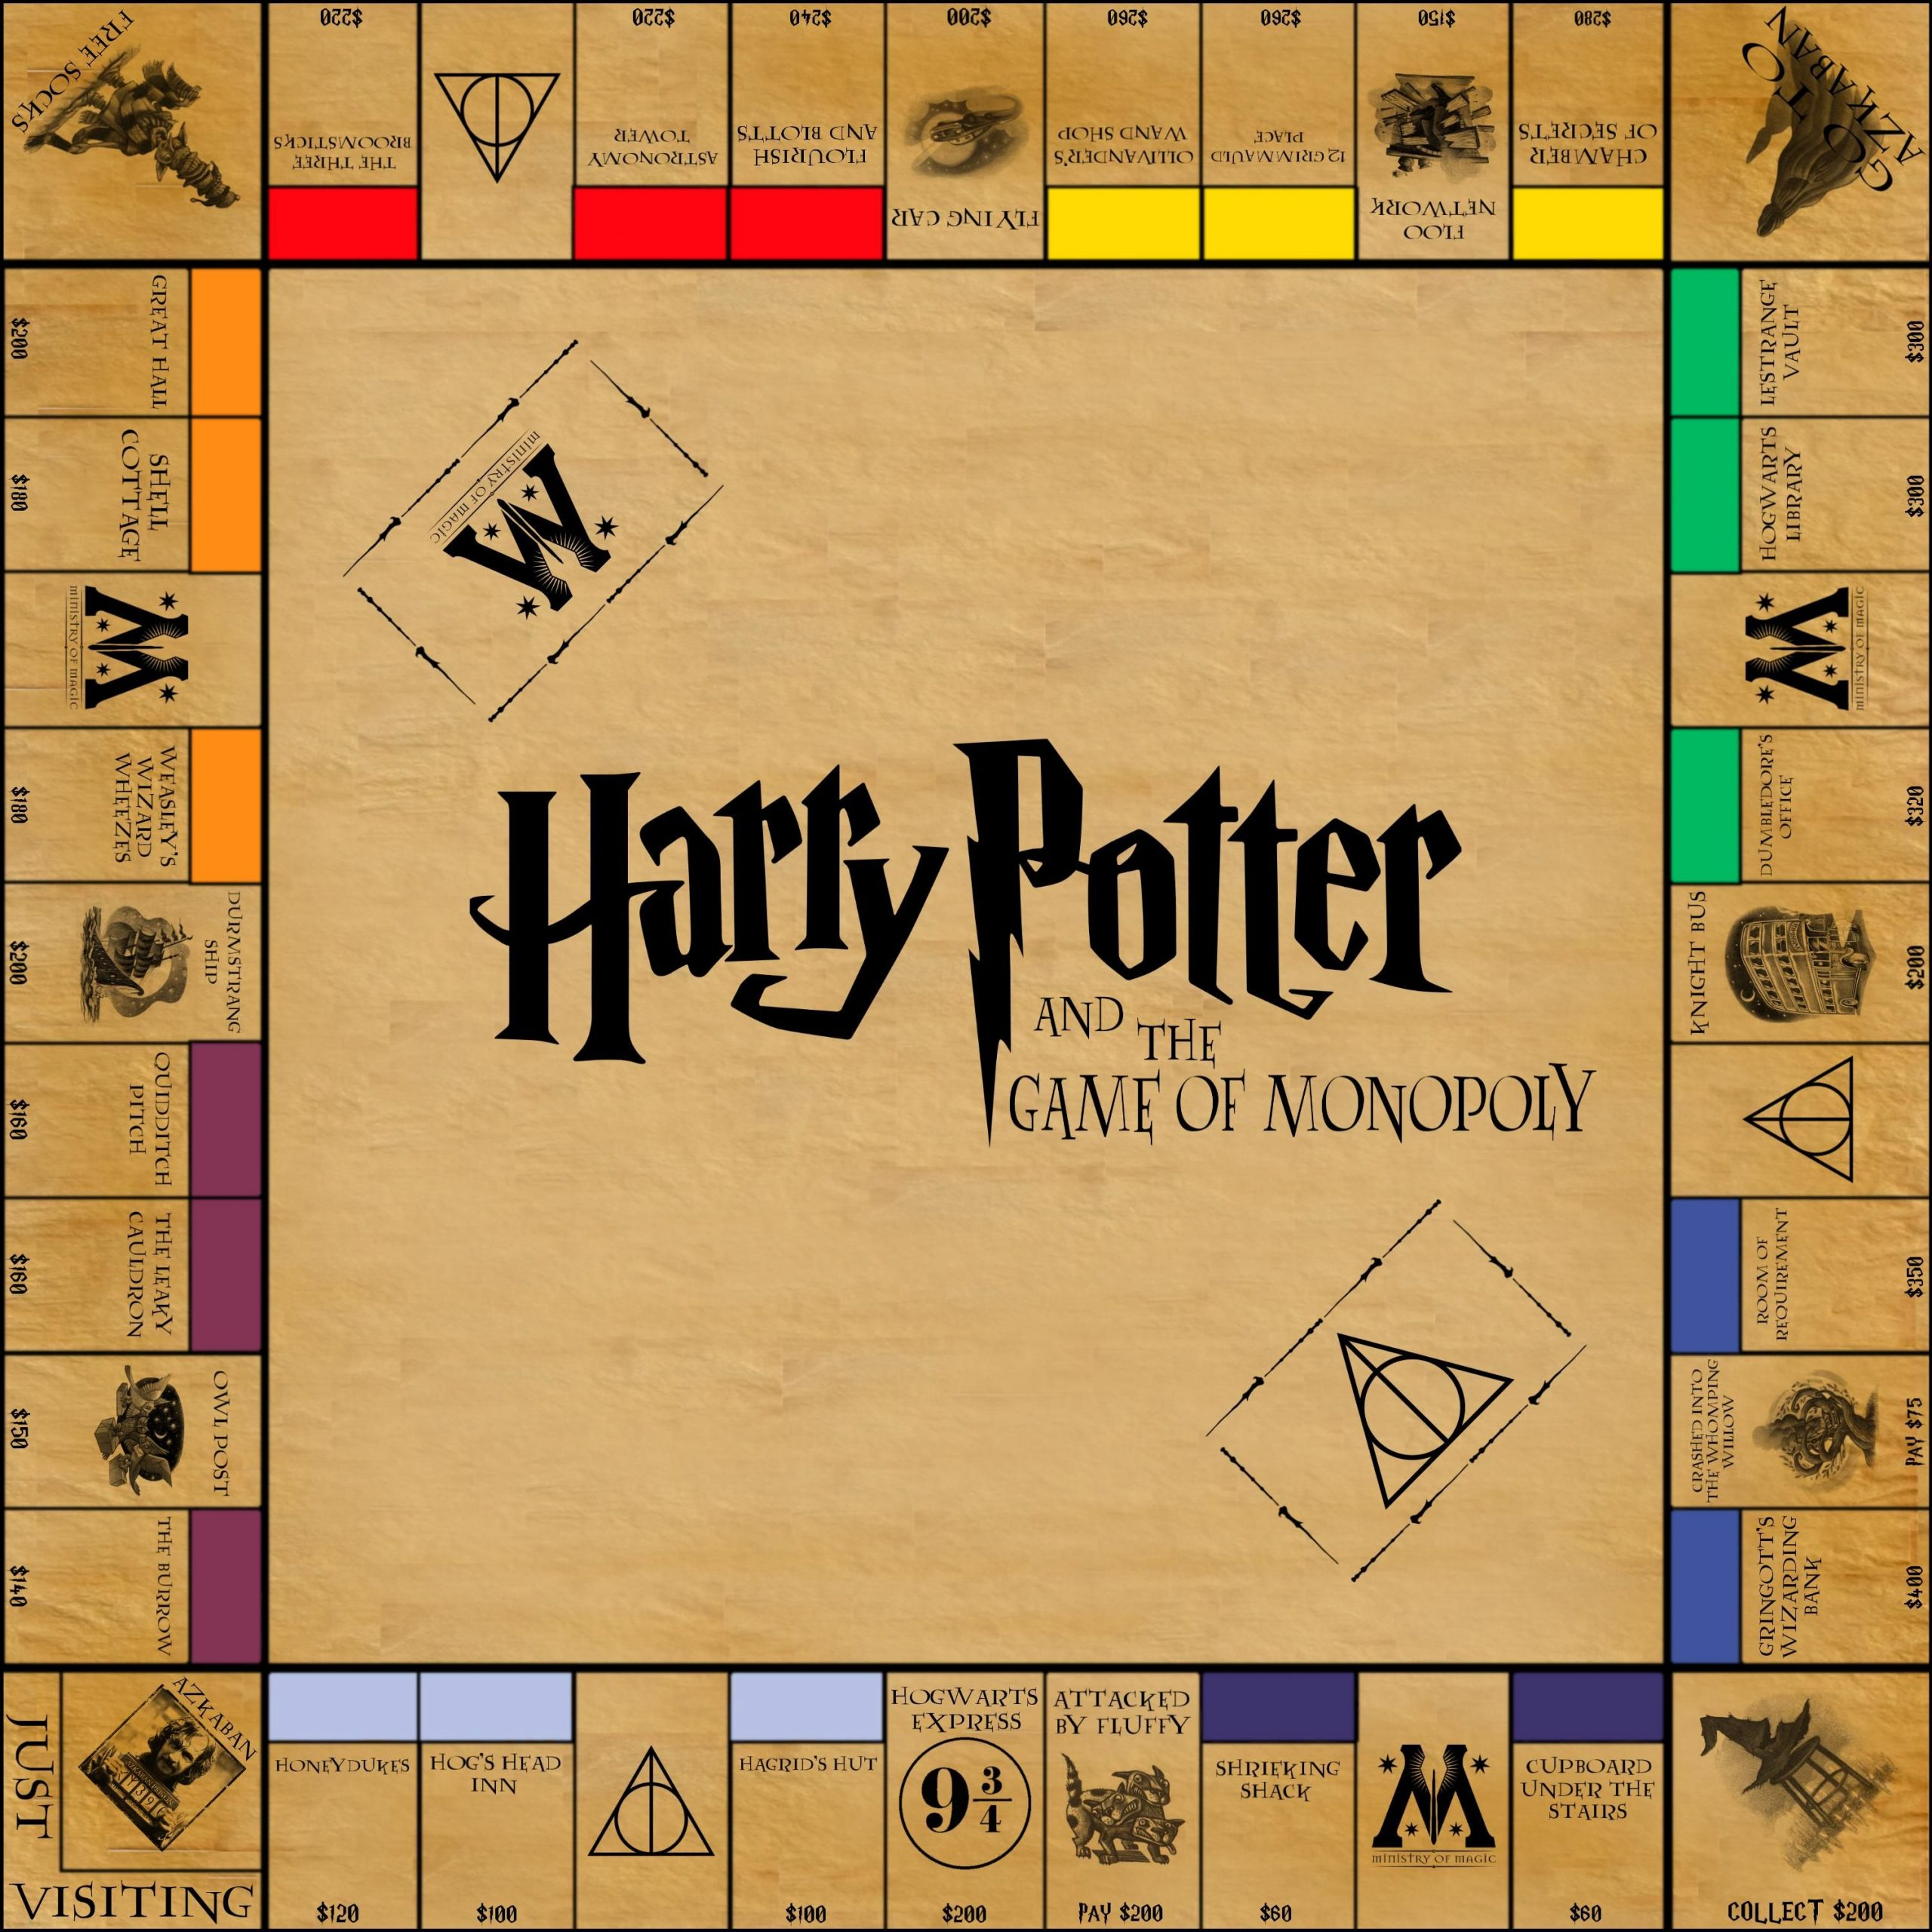 Harry Potter Monopolyfunkblast - Harry Potter Knutselen